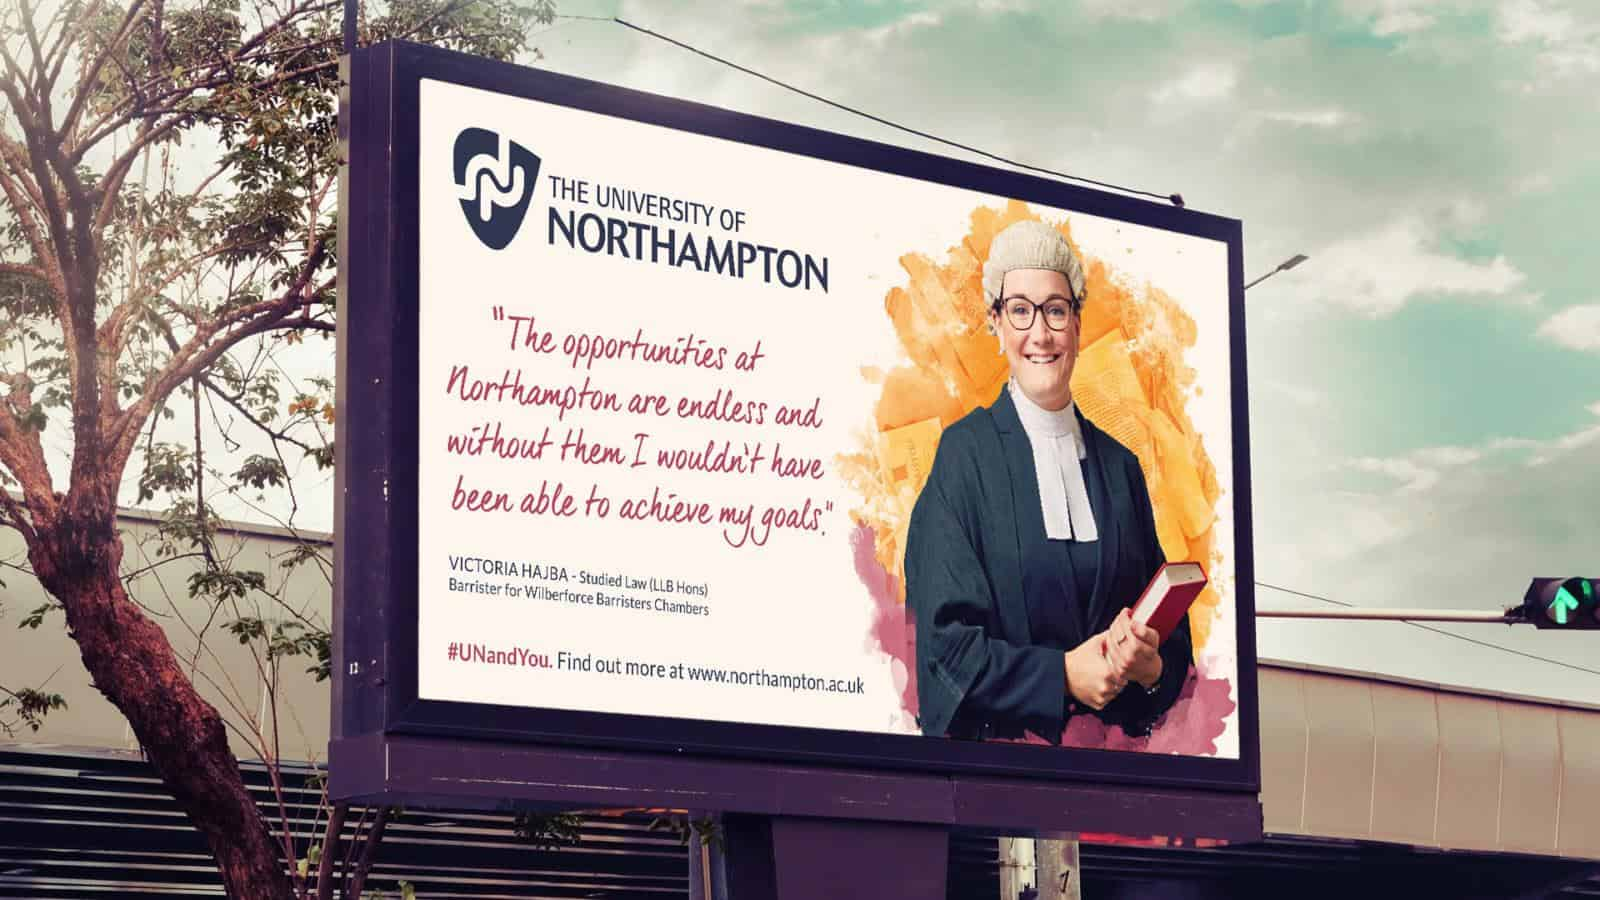 University of Northampton outdoor advertising for recruitment campaign